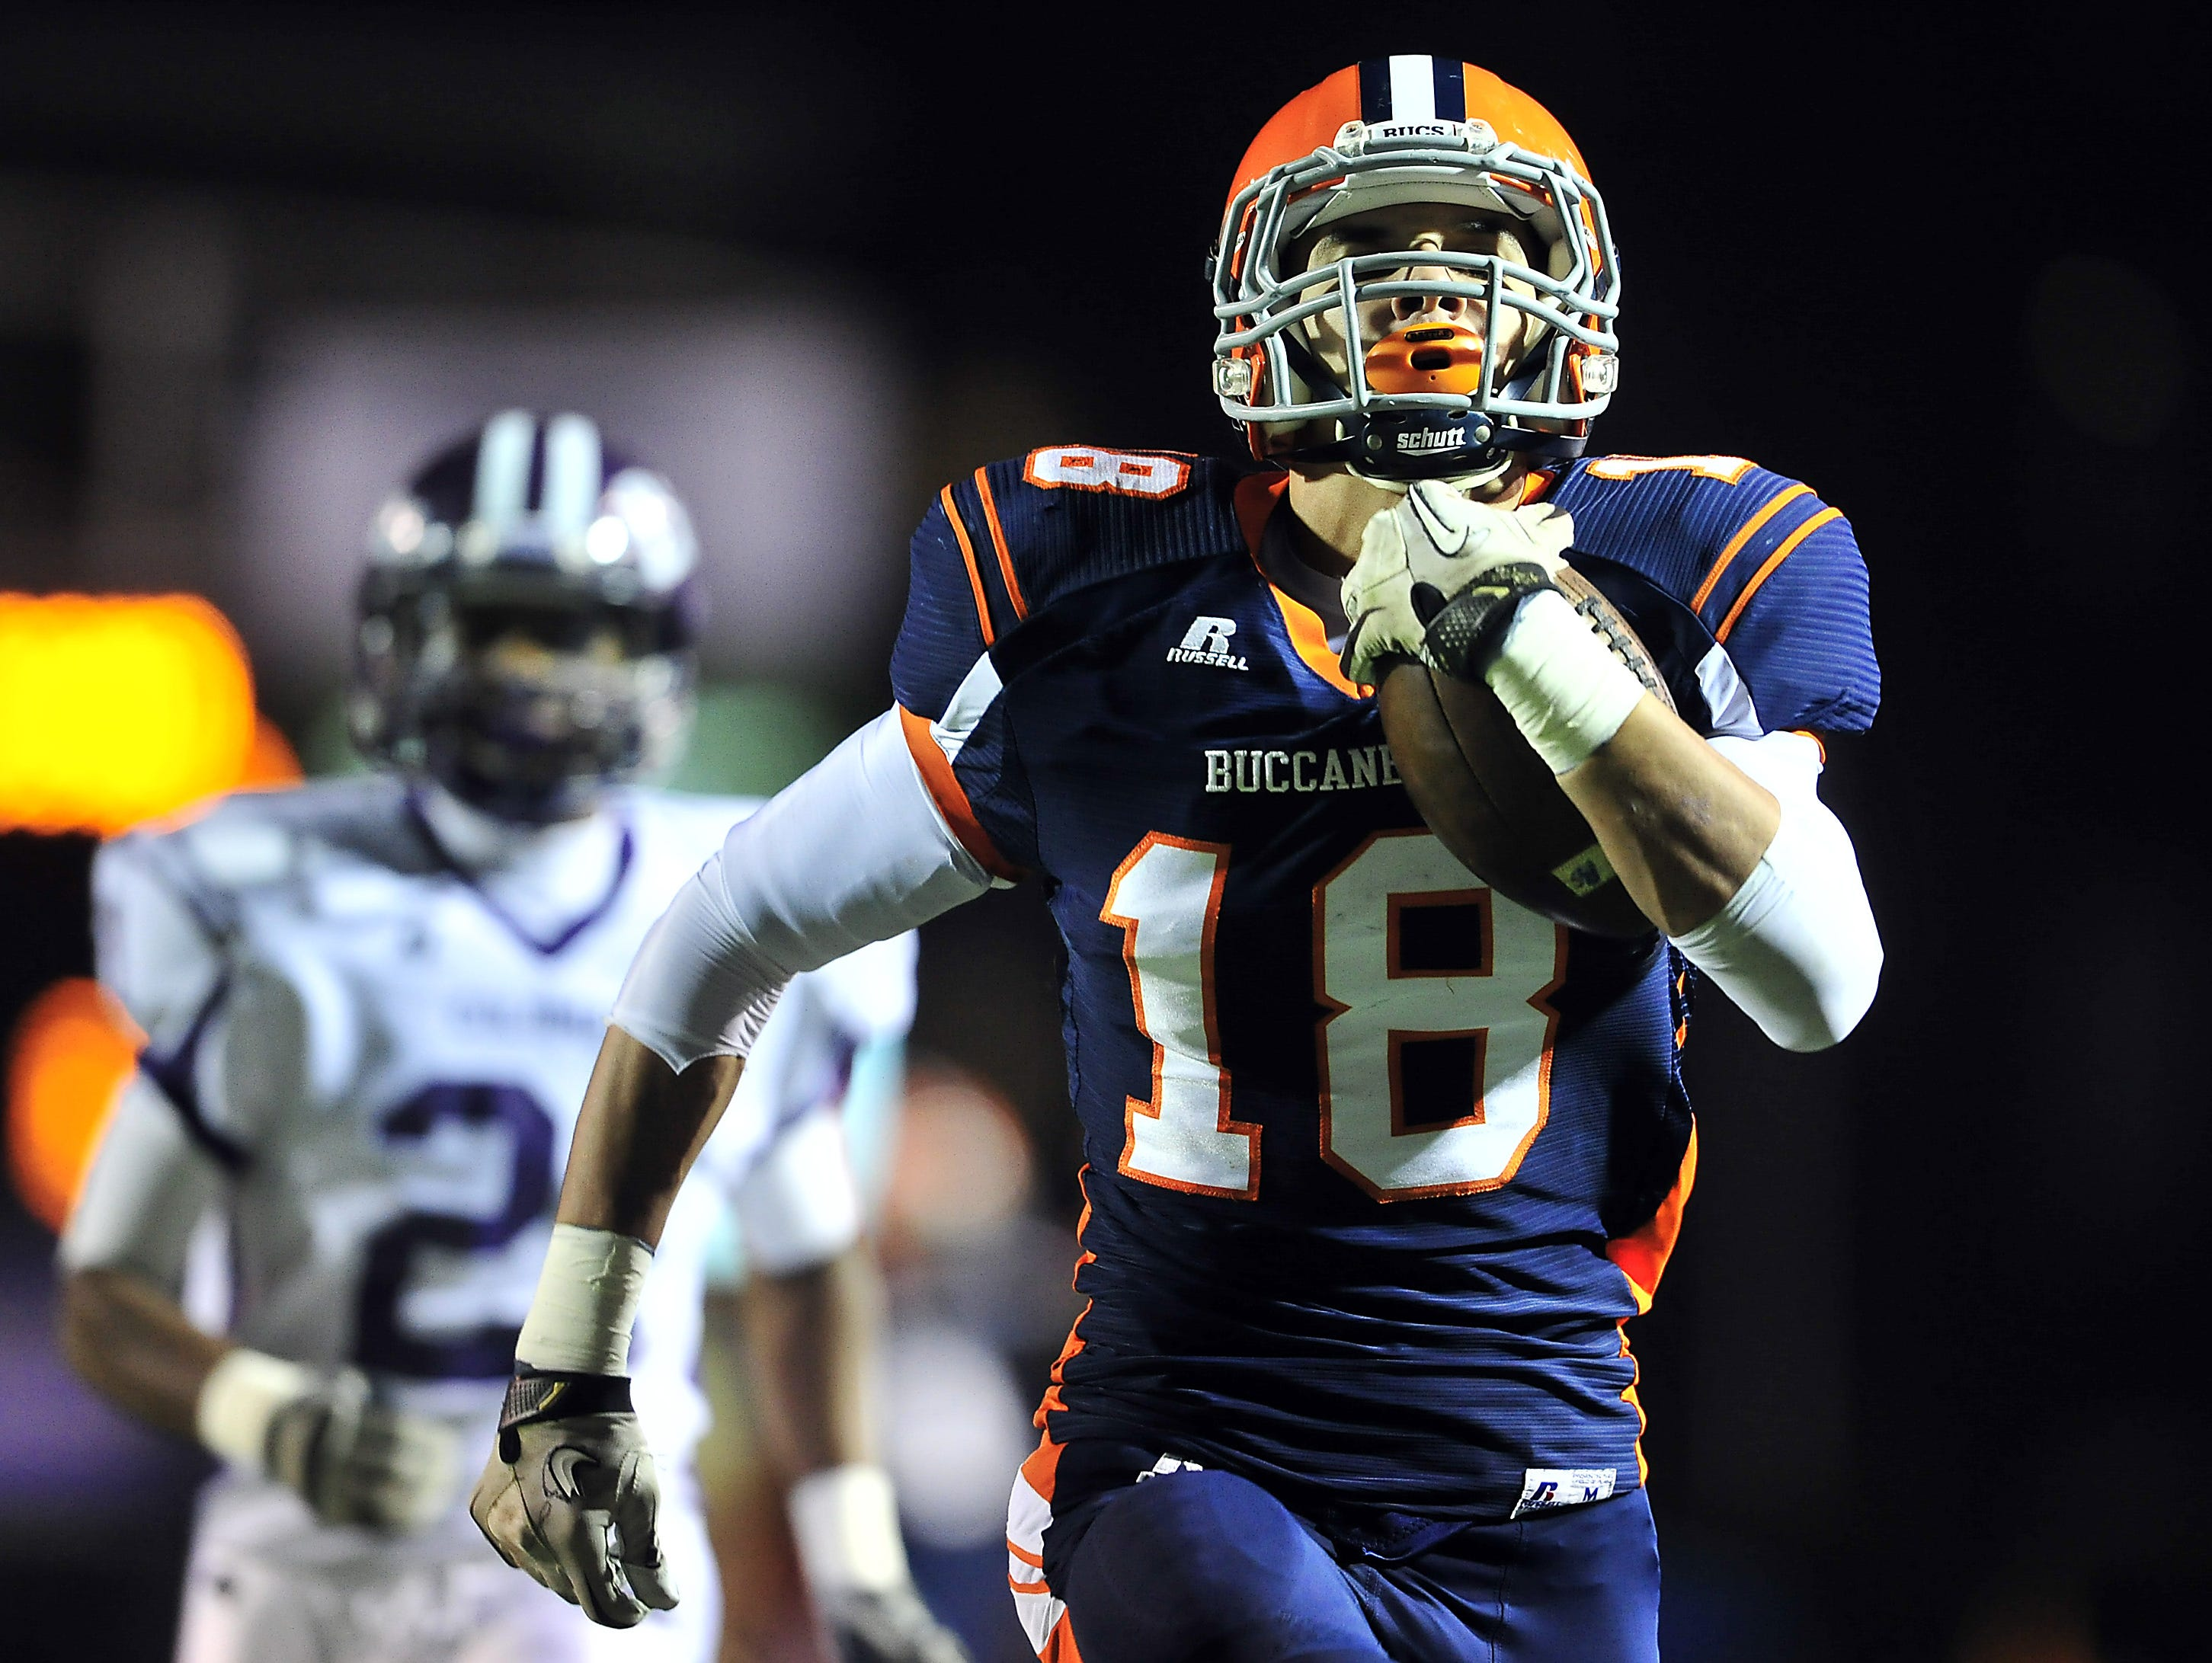 Jalen Hurd (18), in his playing days at Beech.